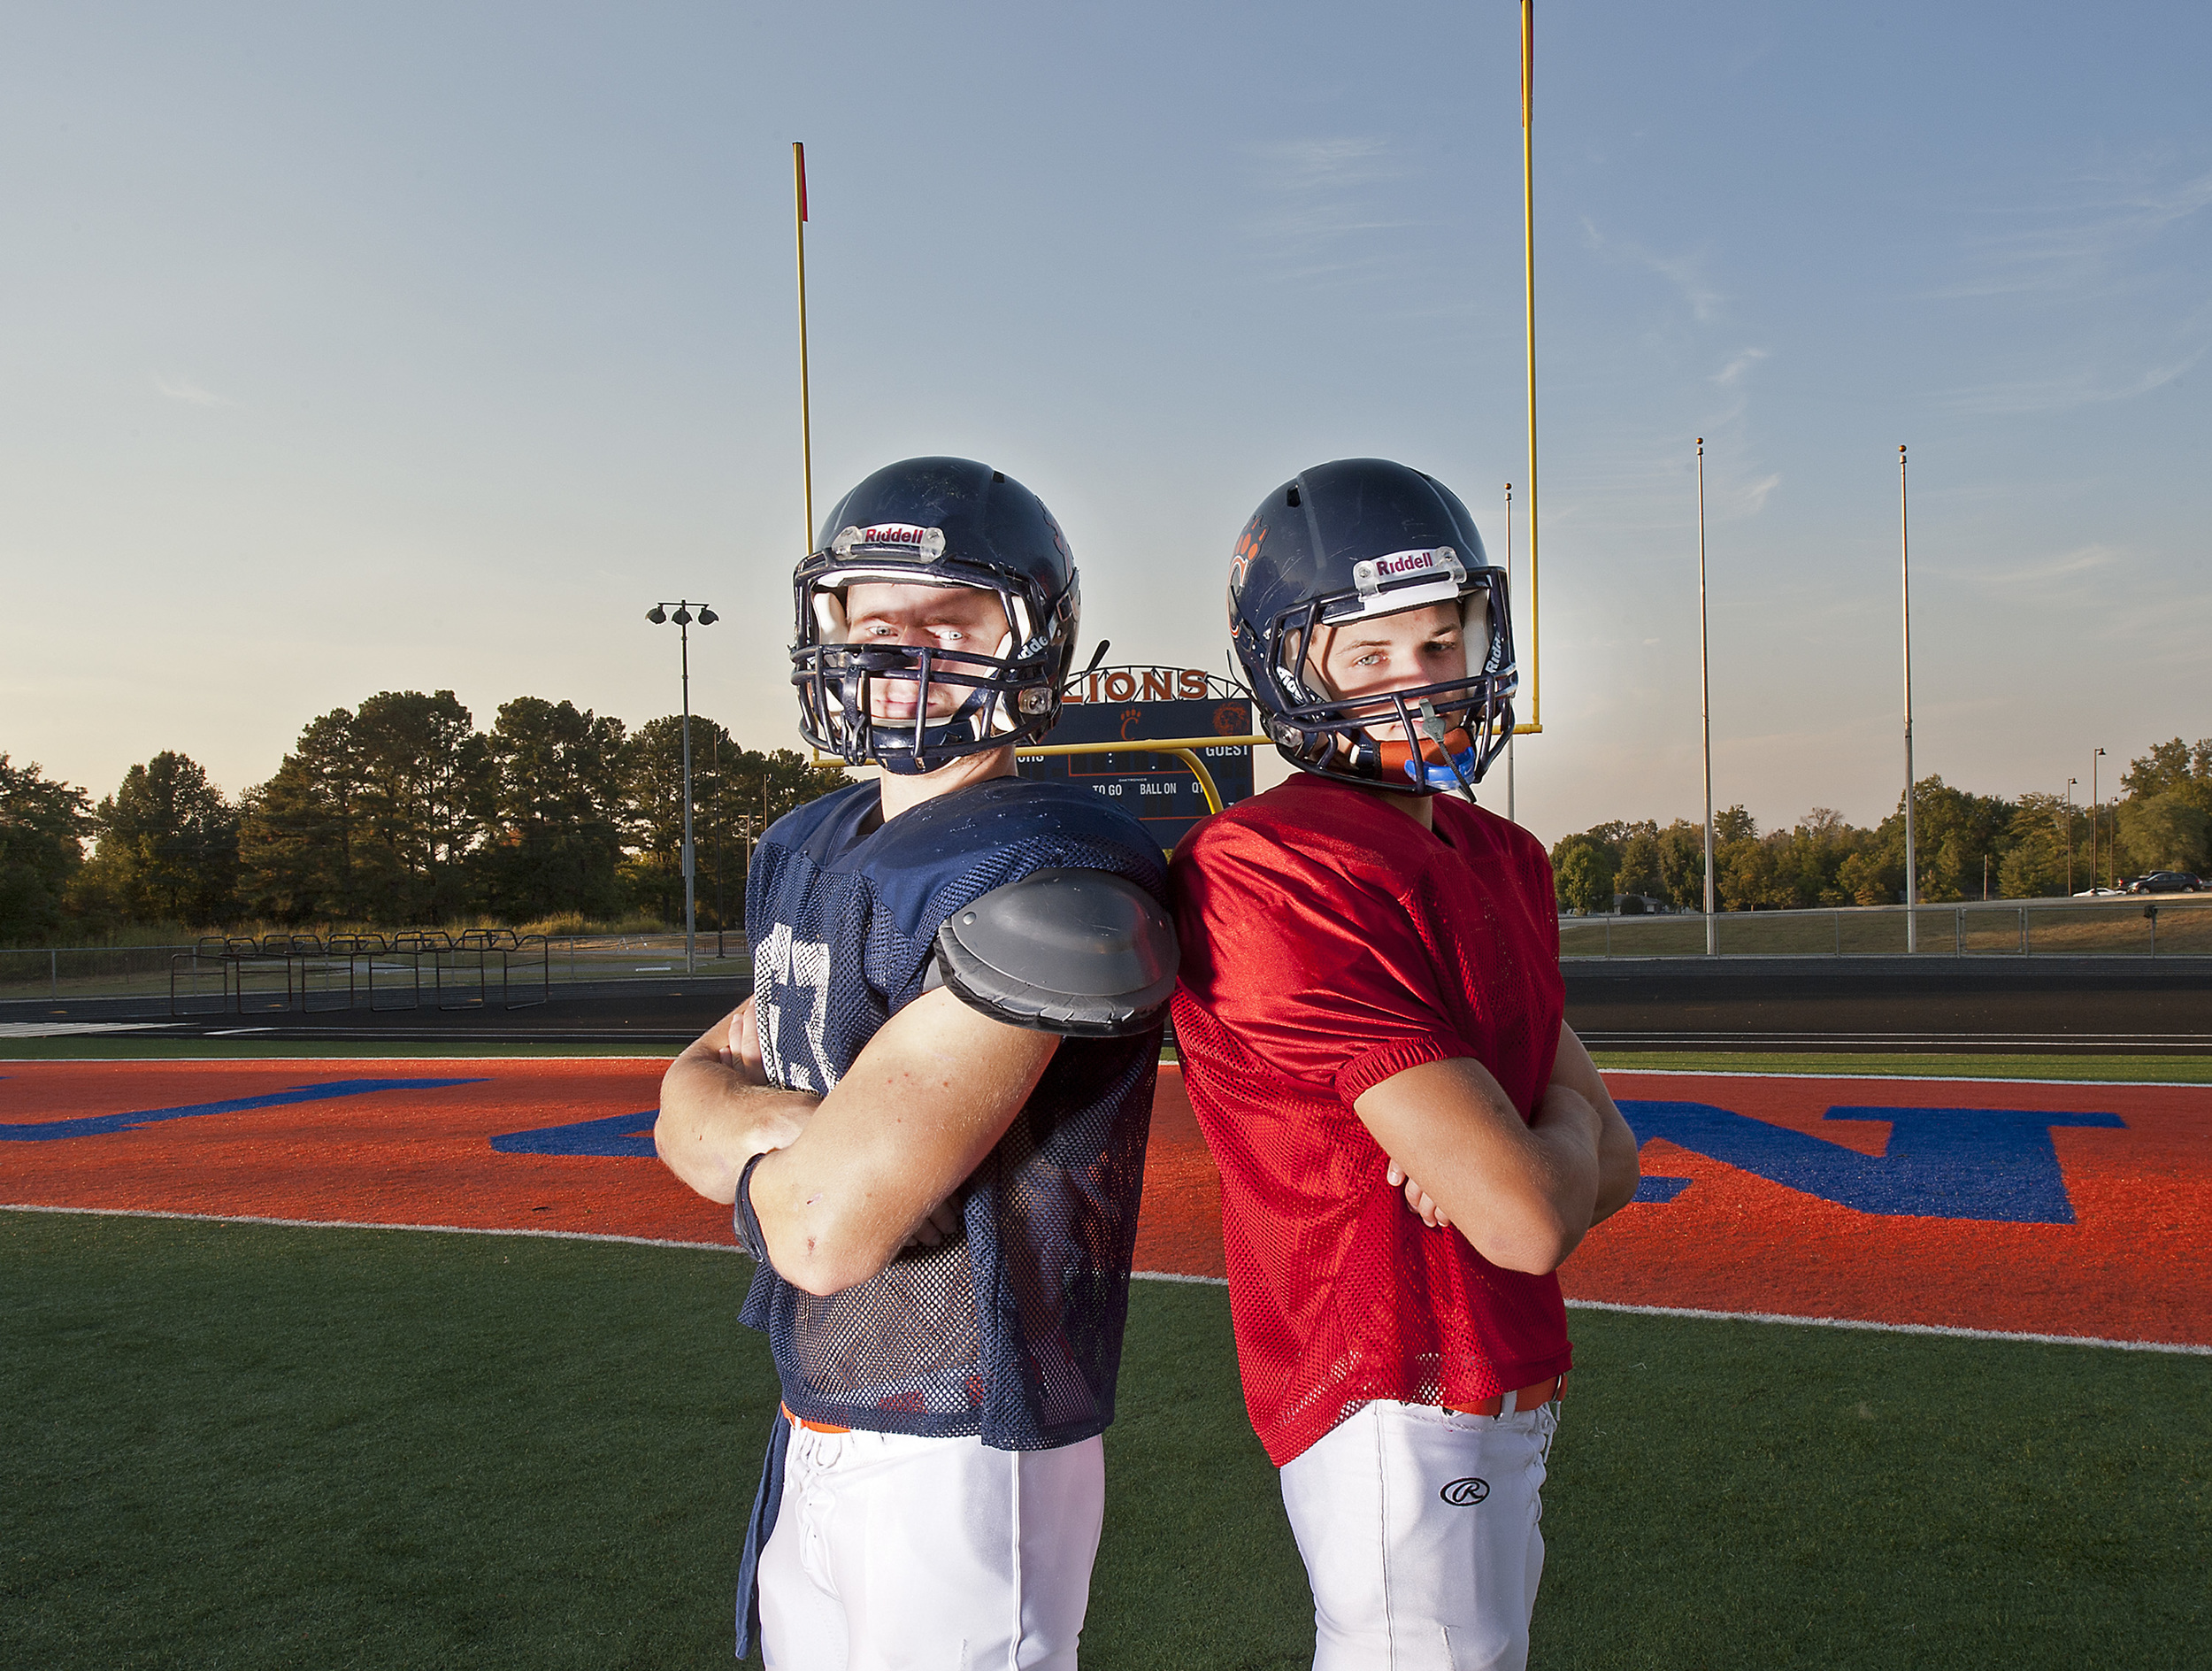 Running backBrayden Bisaillon, left, and quarterback Blake Hicks have replaced former running backPhillip Frangello and quarterback Michael Aschemann on the Carterville Lions this season, jumping out to a 5-0 start. Bisaillon and Hicks believe they can bring Carterville its first state championship since 1996.